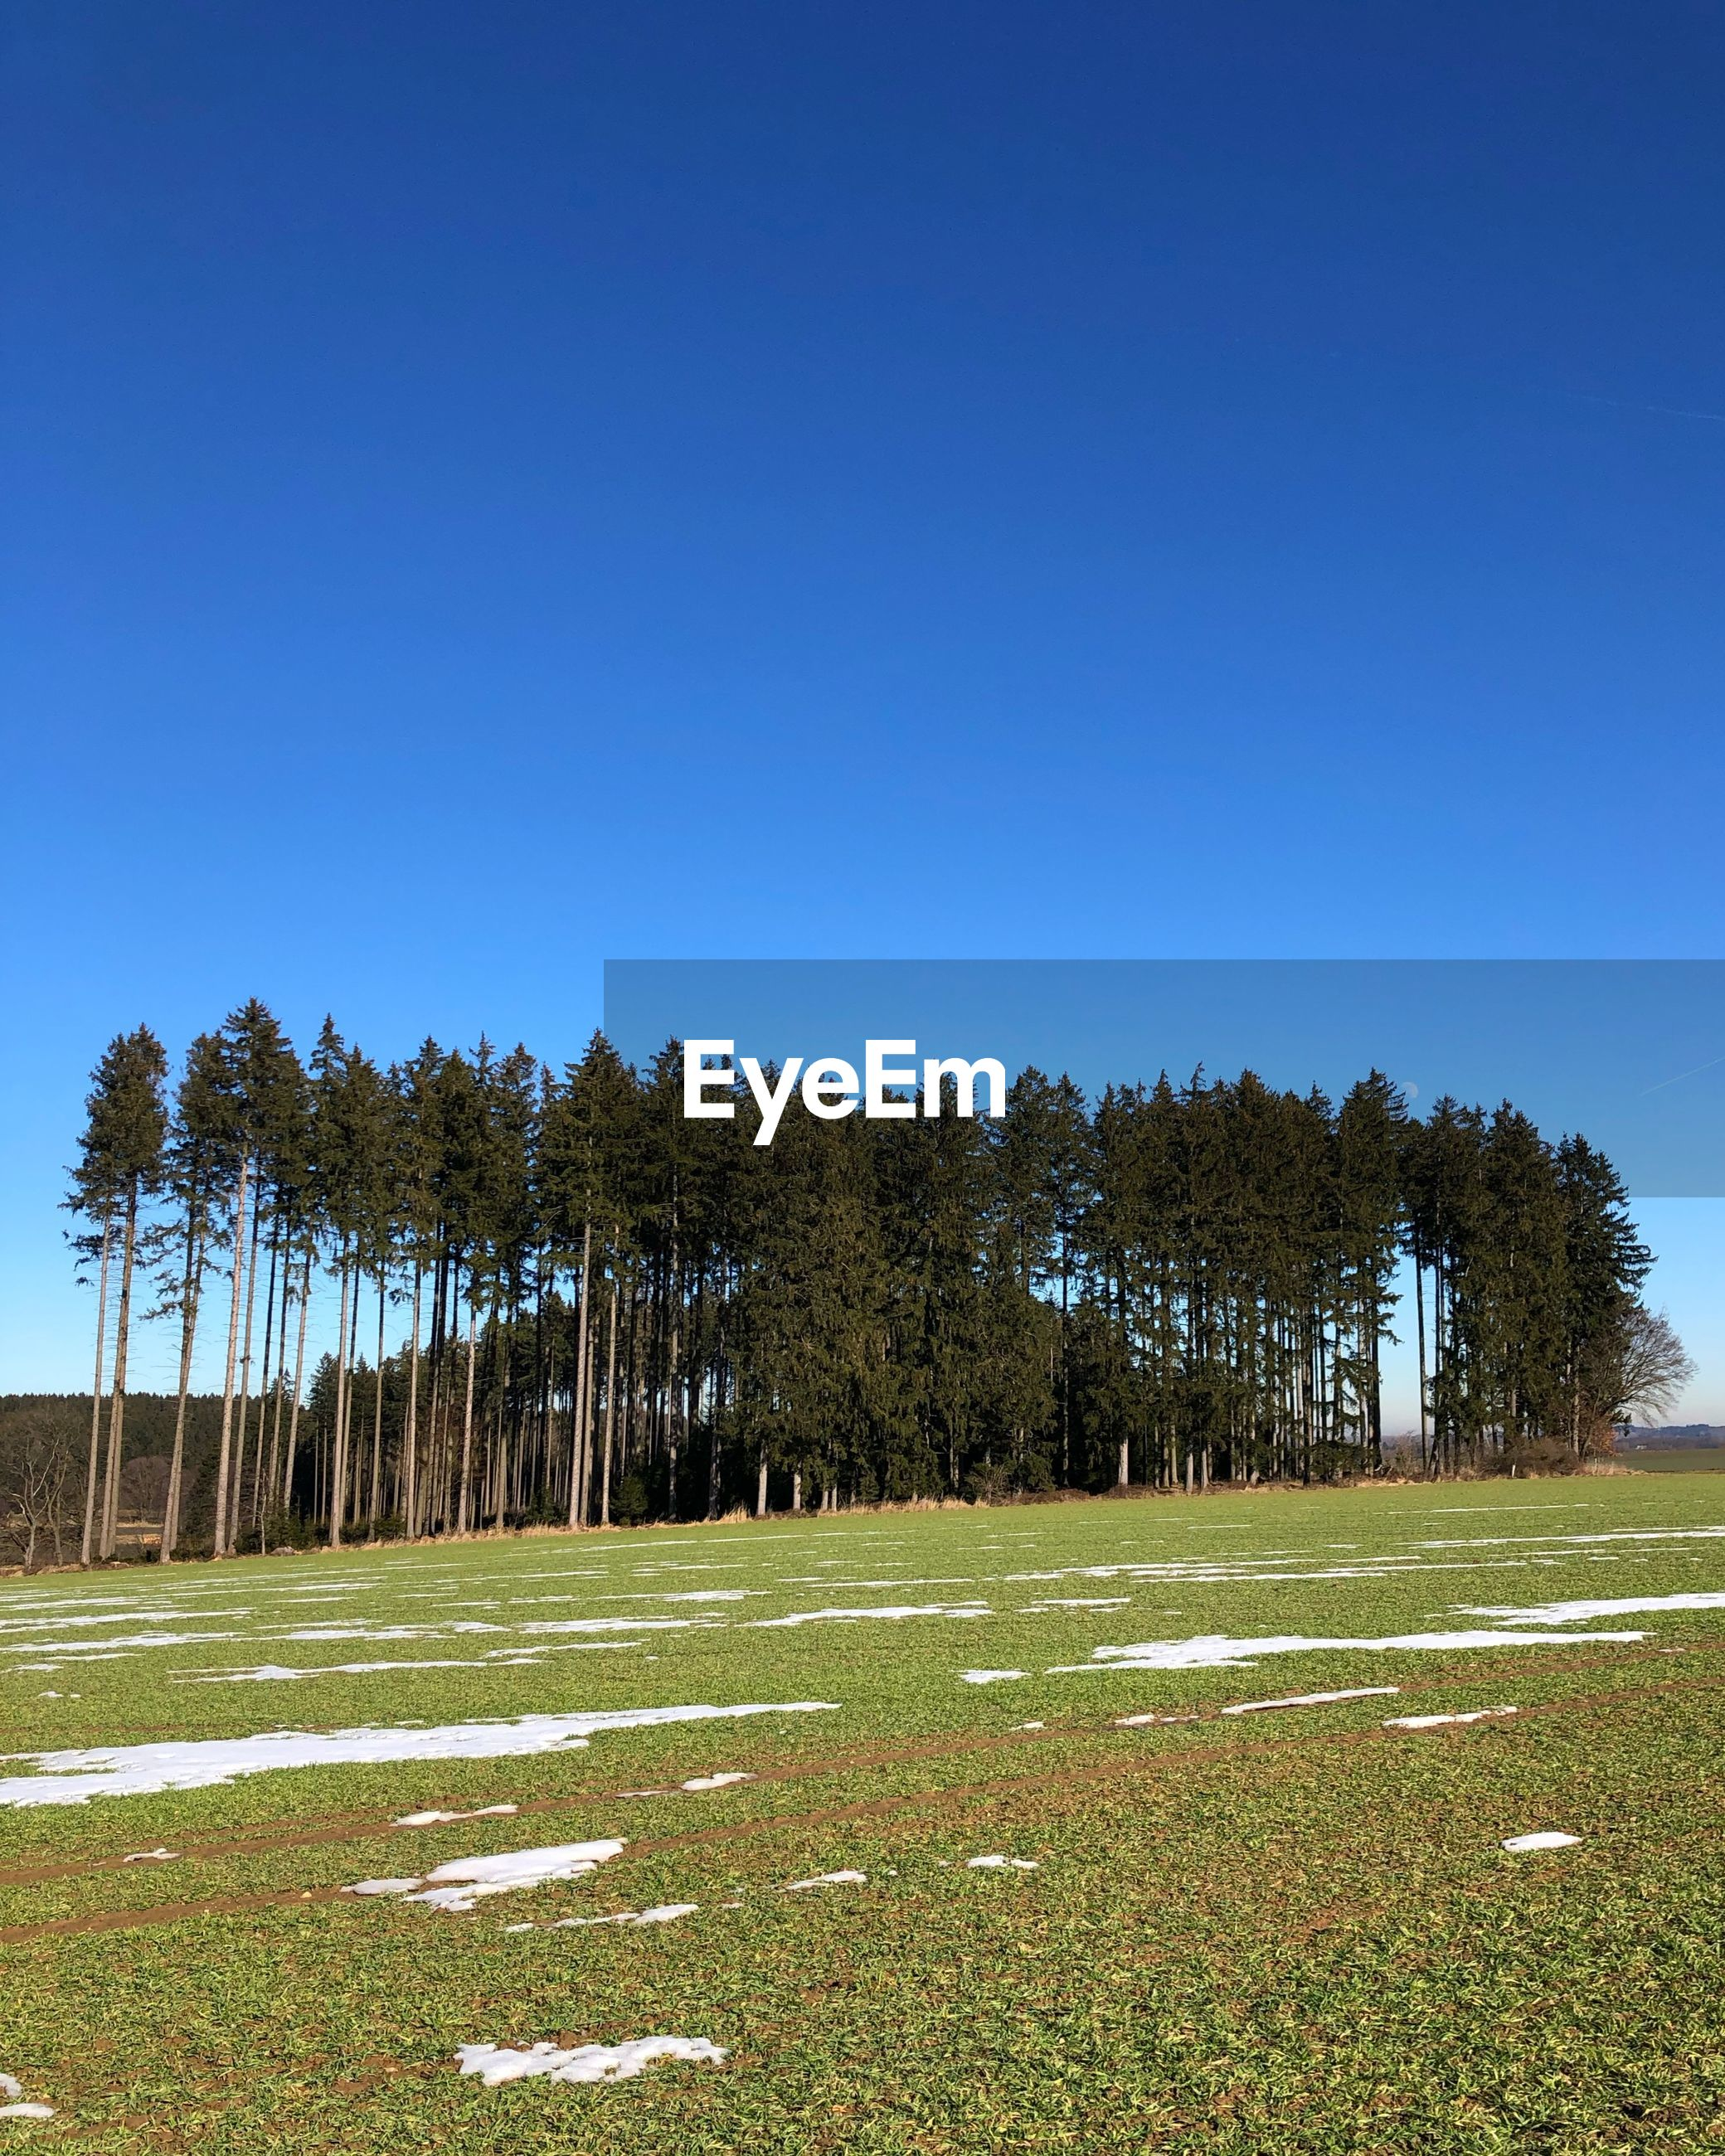 TREES GROWING ON FIELD AGAINST CLEAR BLUE SKY